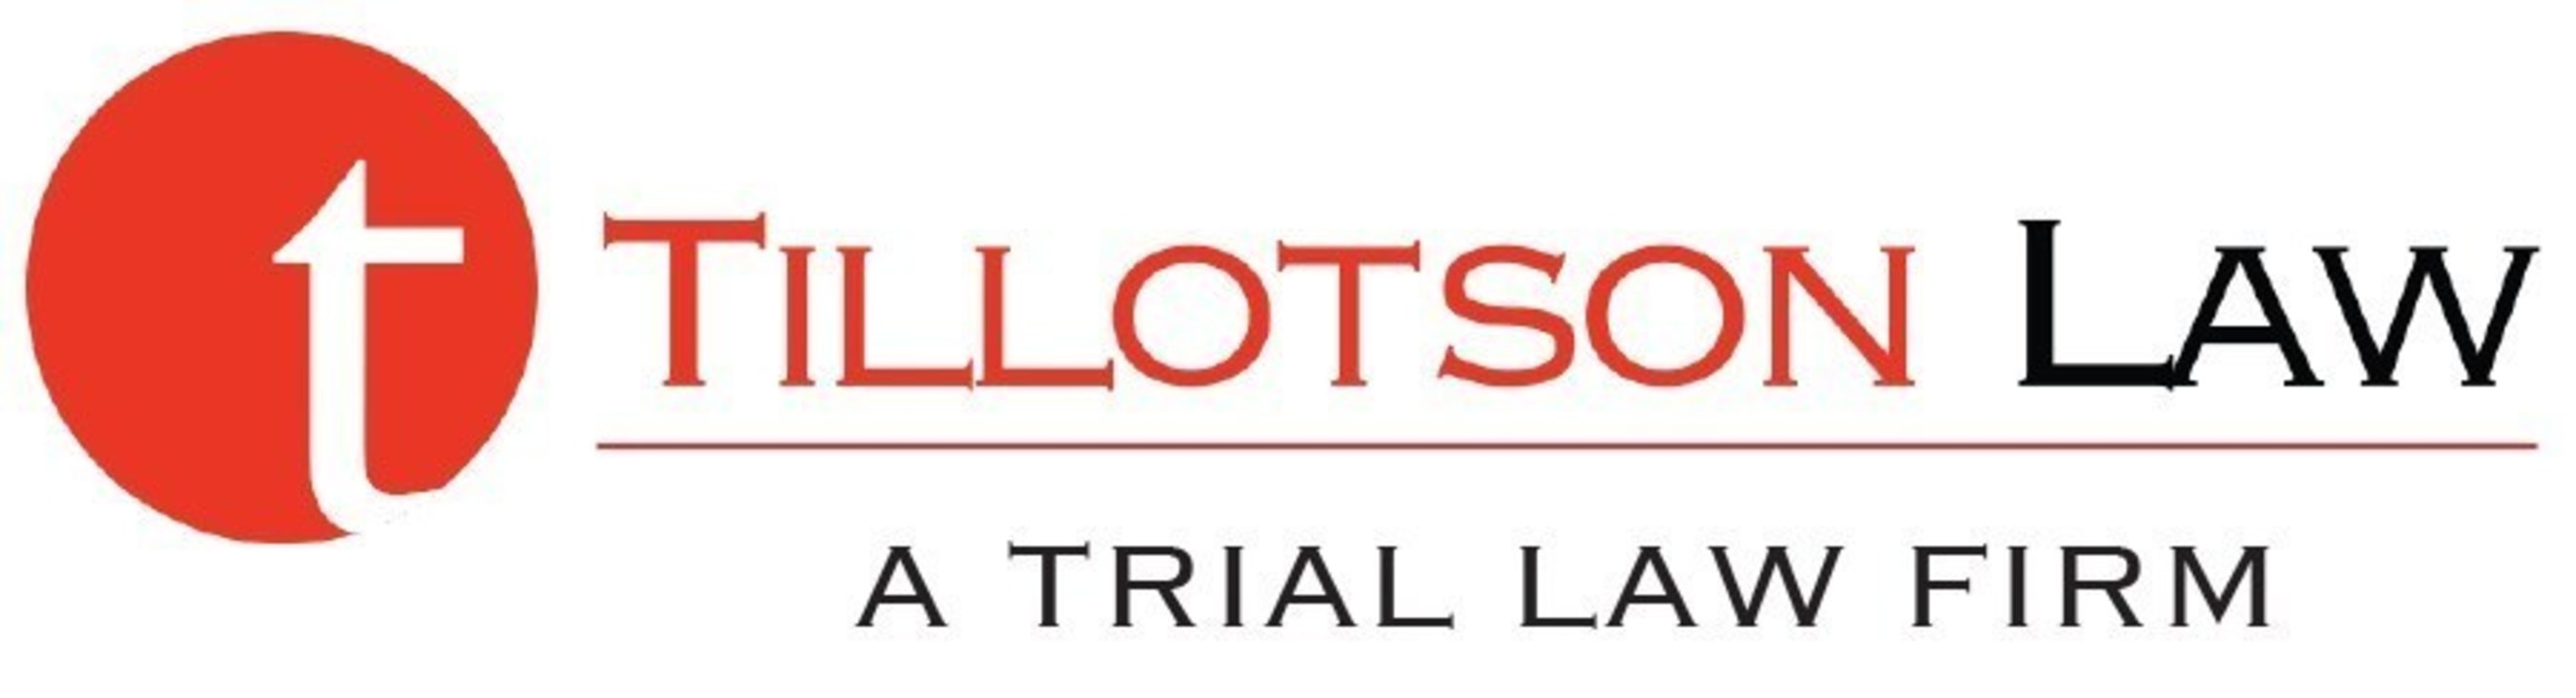 Dallas Lawyer Jeff Tillotson Appointed to Board of Managers of